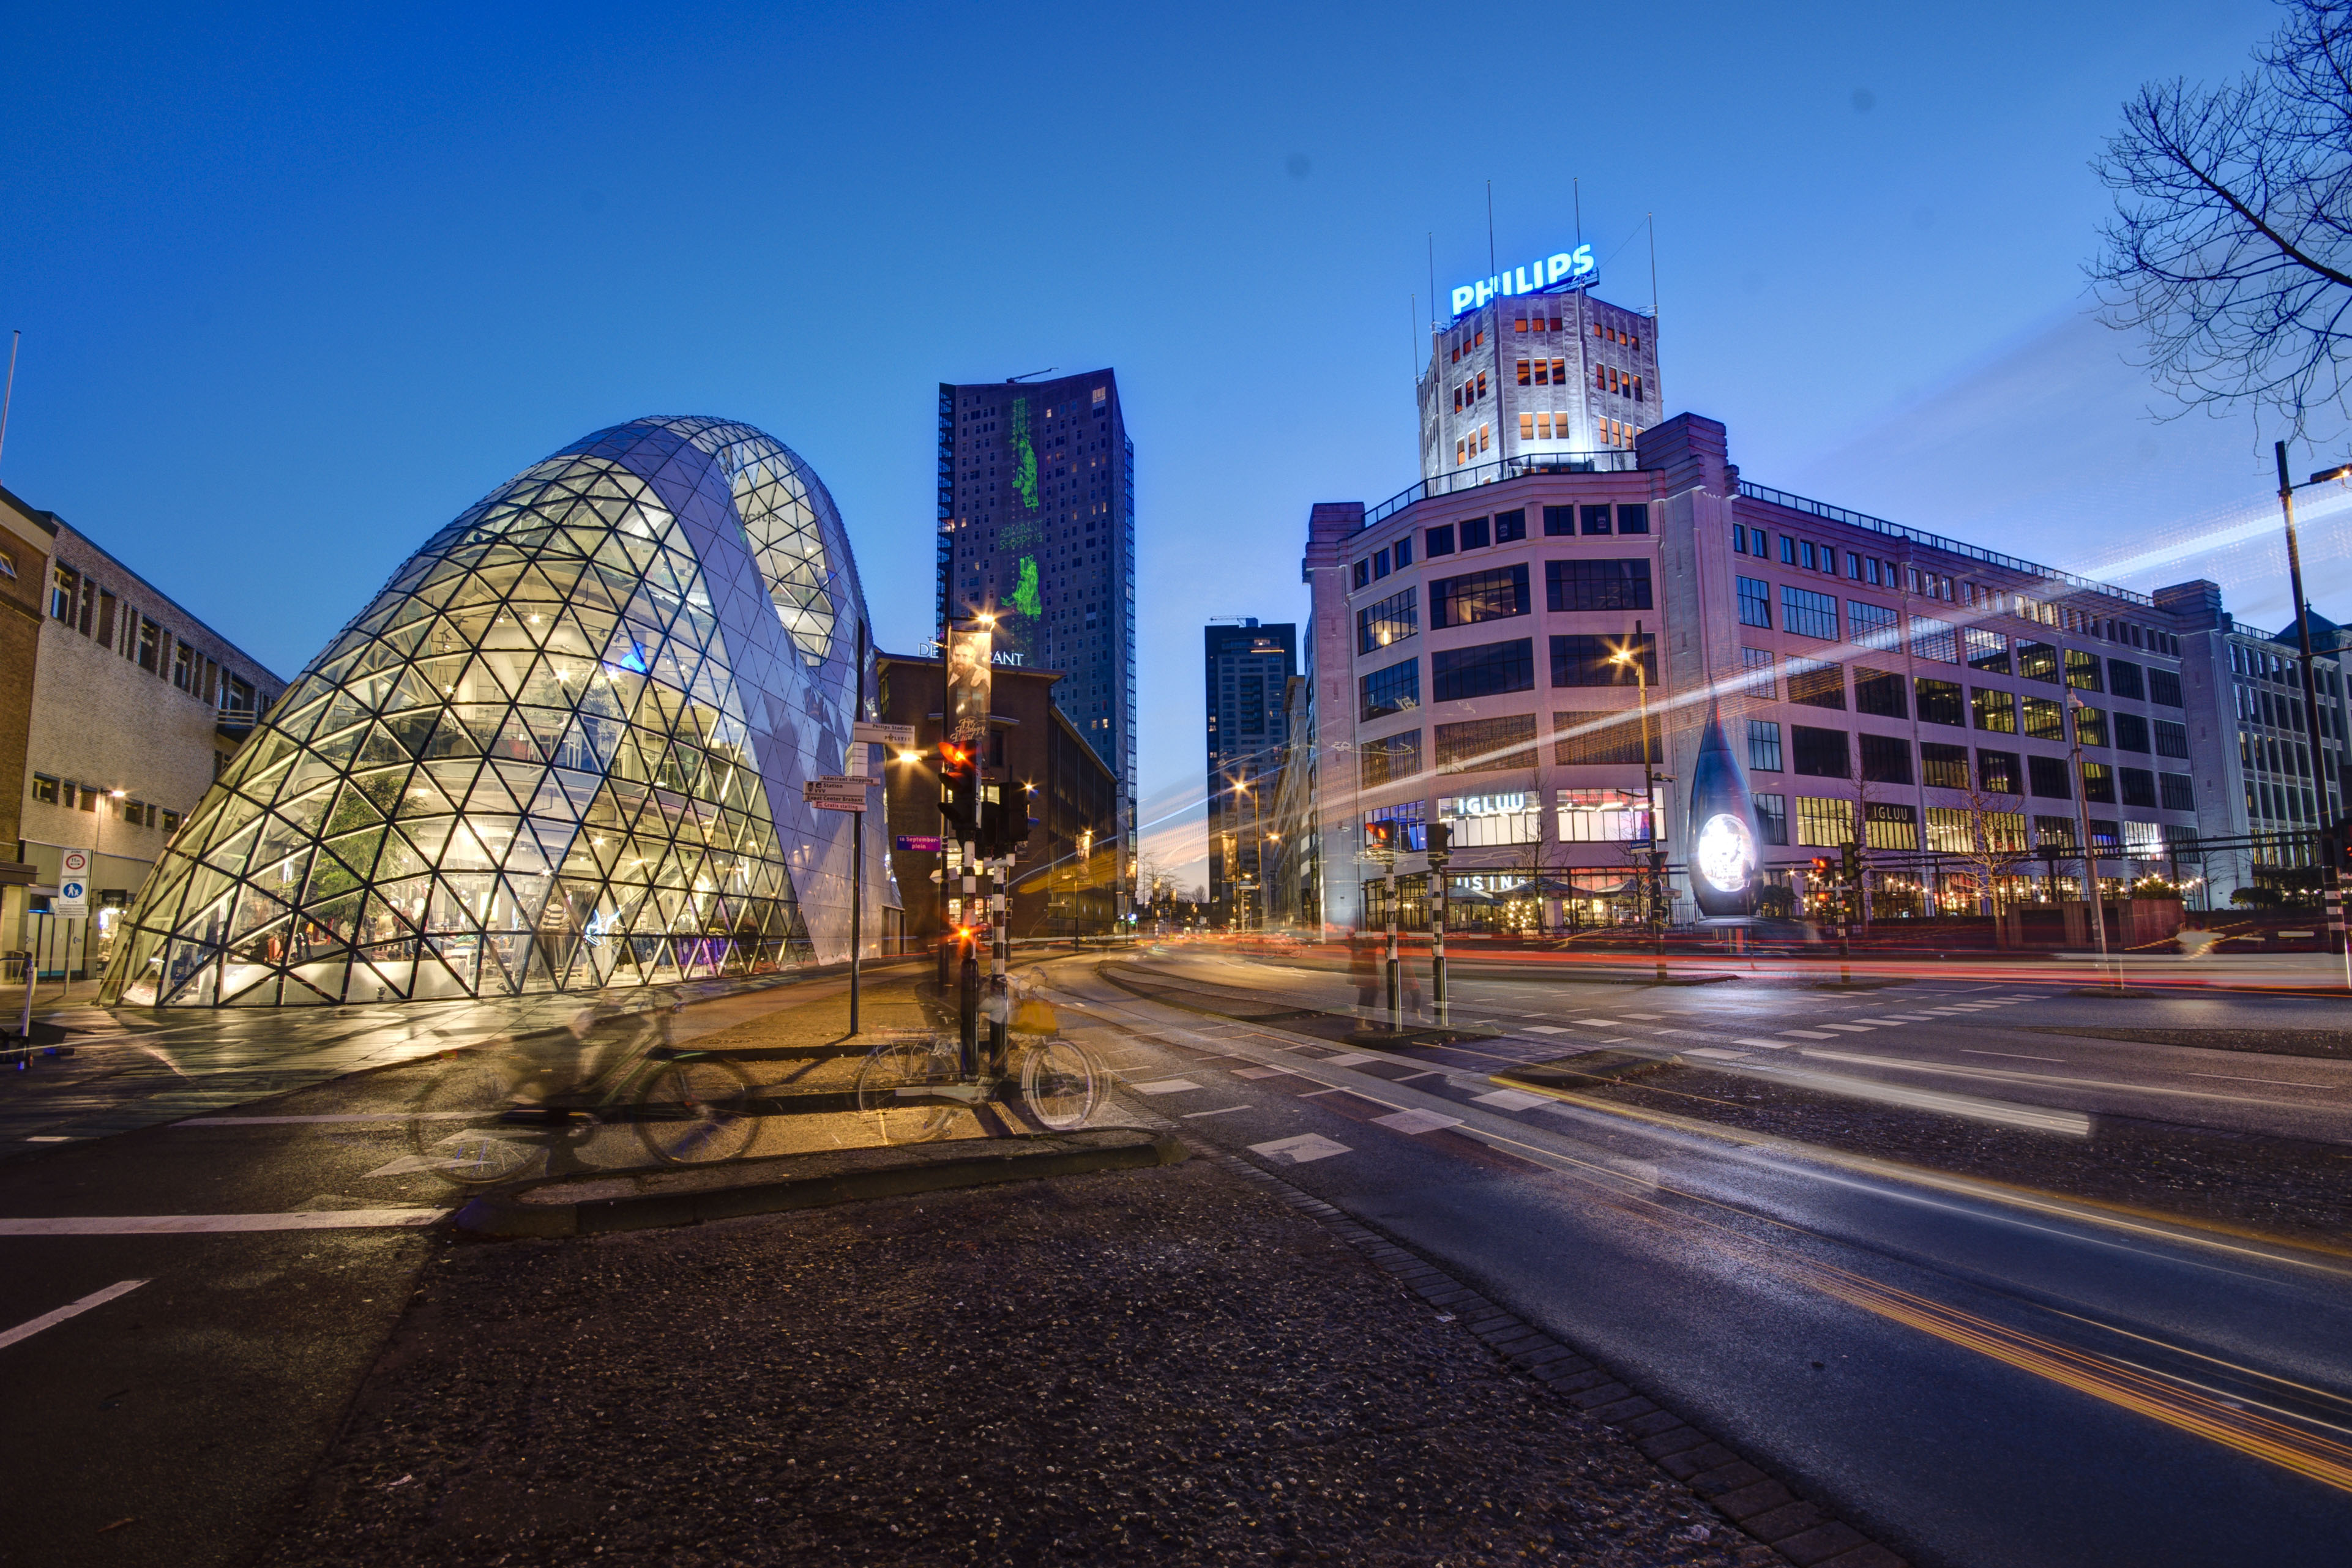 Flights To Eindhoven From Warshaw Both Ways For 29